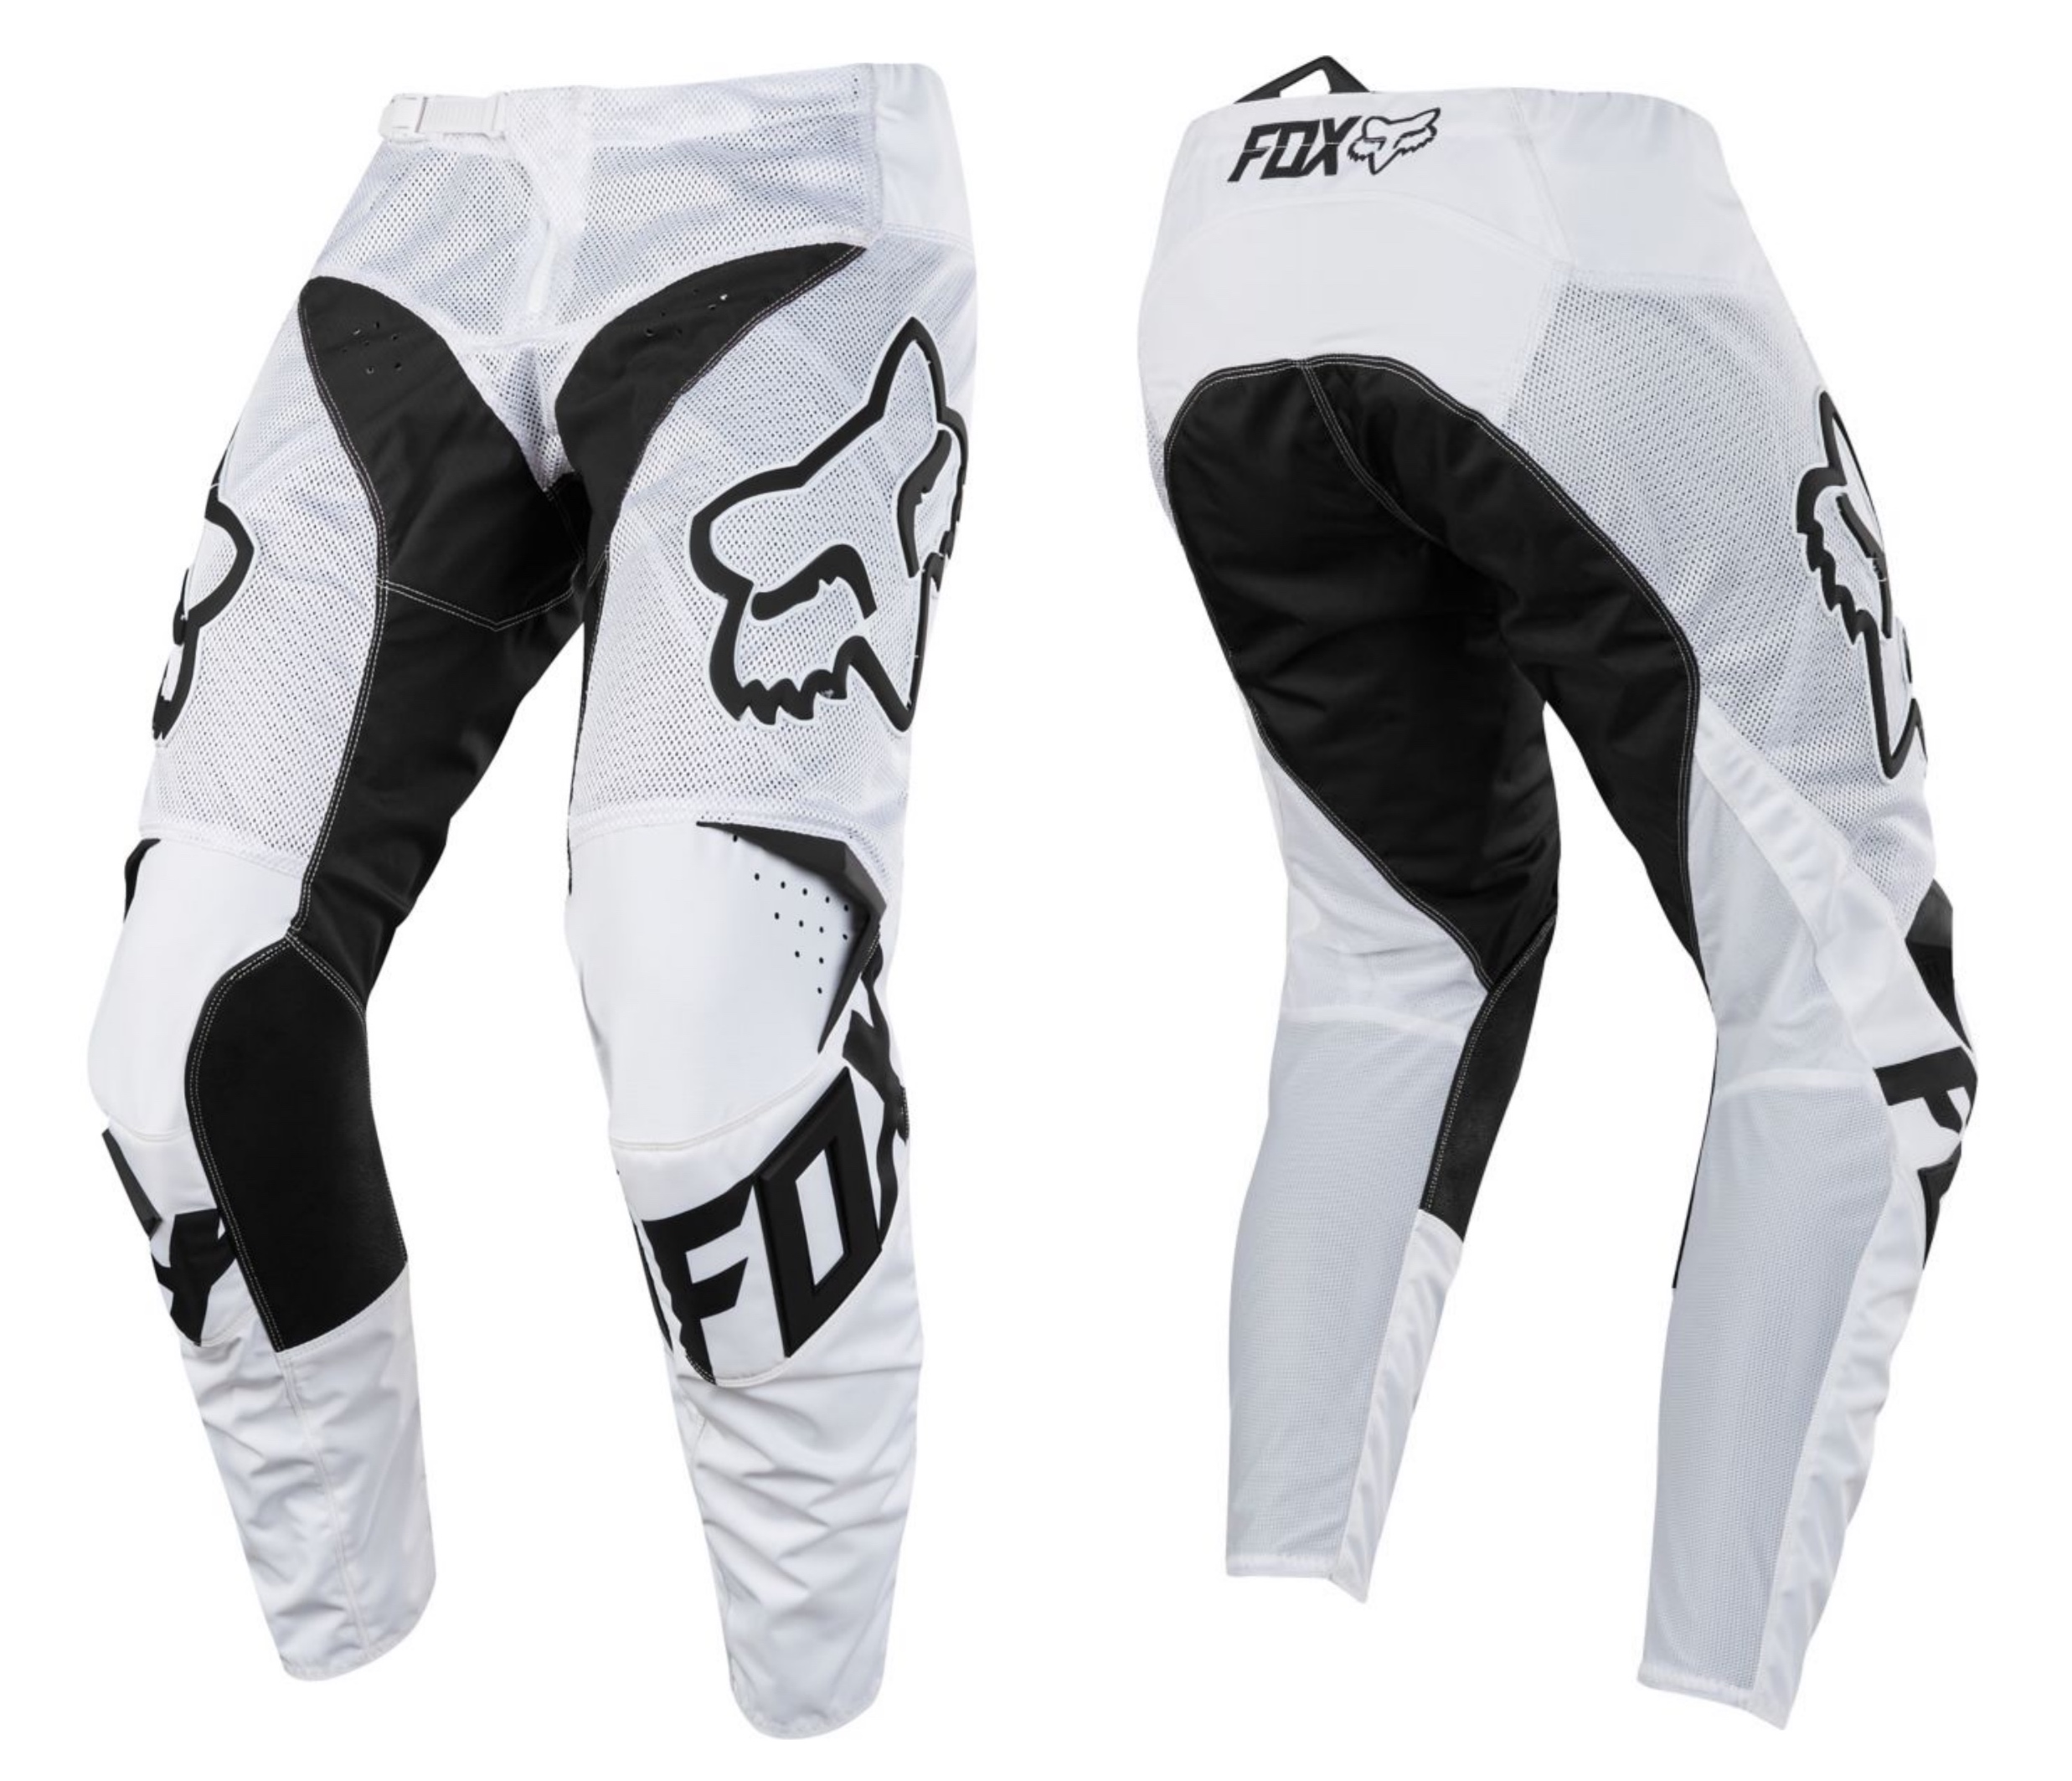 2018 Fox 180 Mastar Airline pants